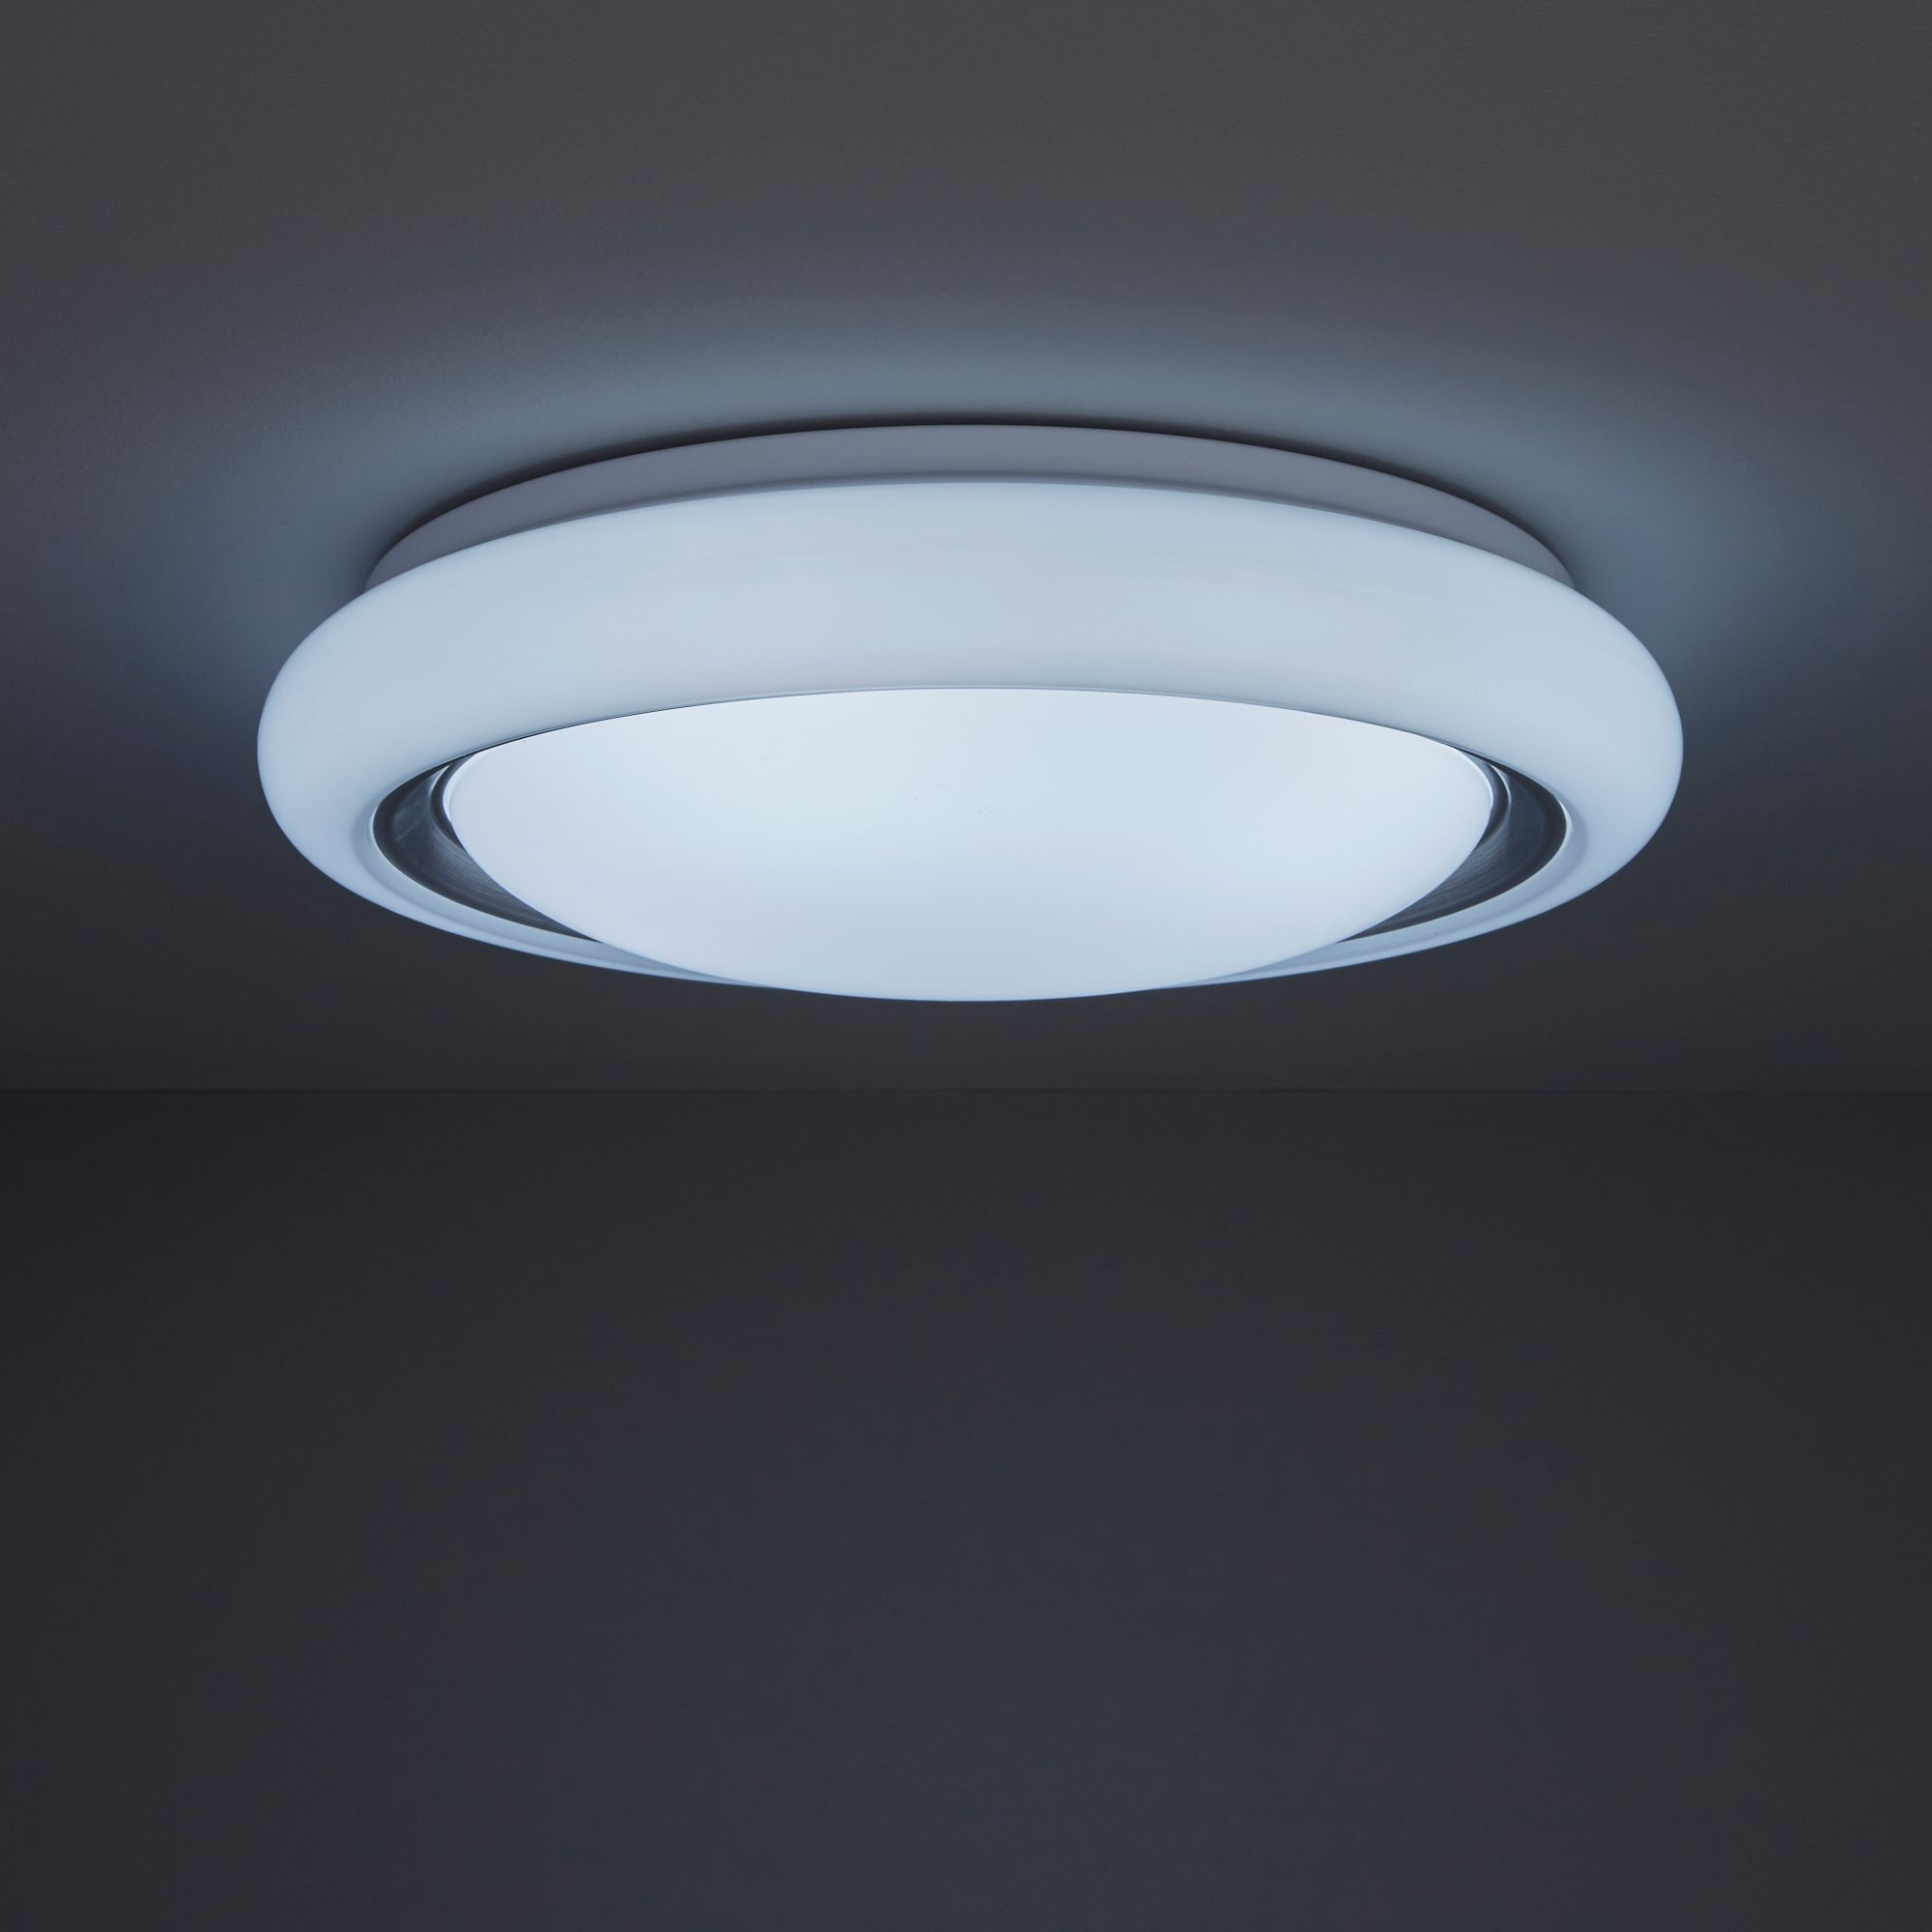 for showroom with good leds livingroom new flooring timber bulbs best lighting looking living lights light fixtures led and downlight connollys ceiling drop india room